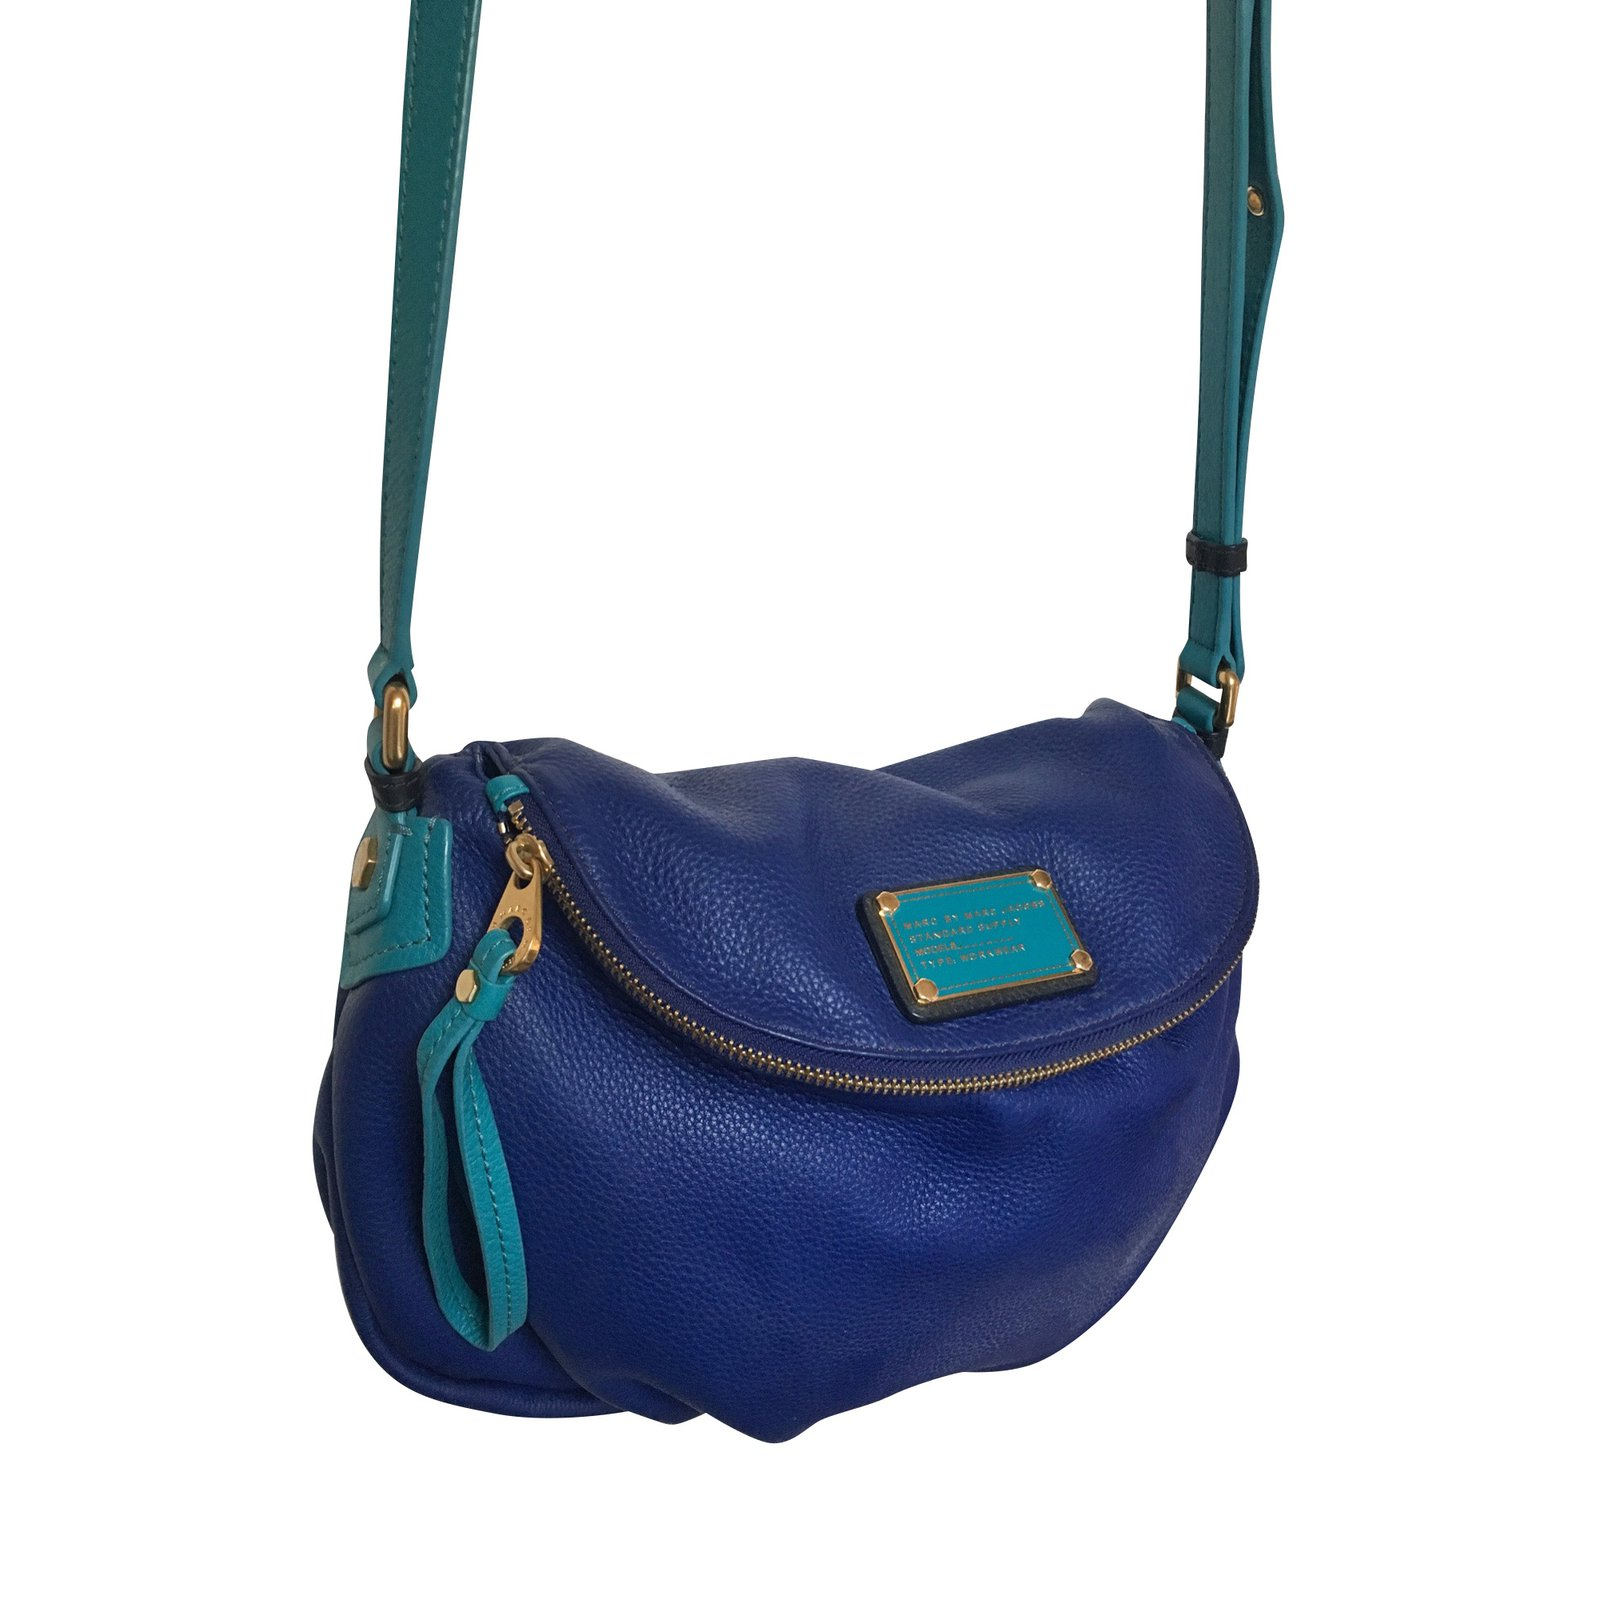 d73e12078f Marc by Marc Jacobs Natasha Marc bag by Marc Jacobs Handbags Leather Blue,Turquoise  ref